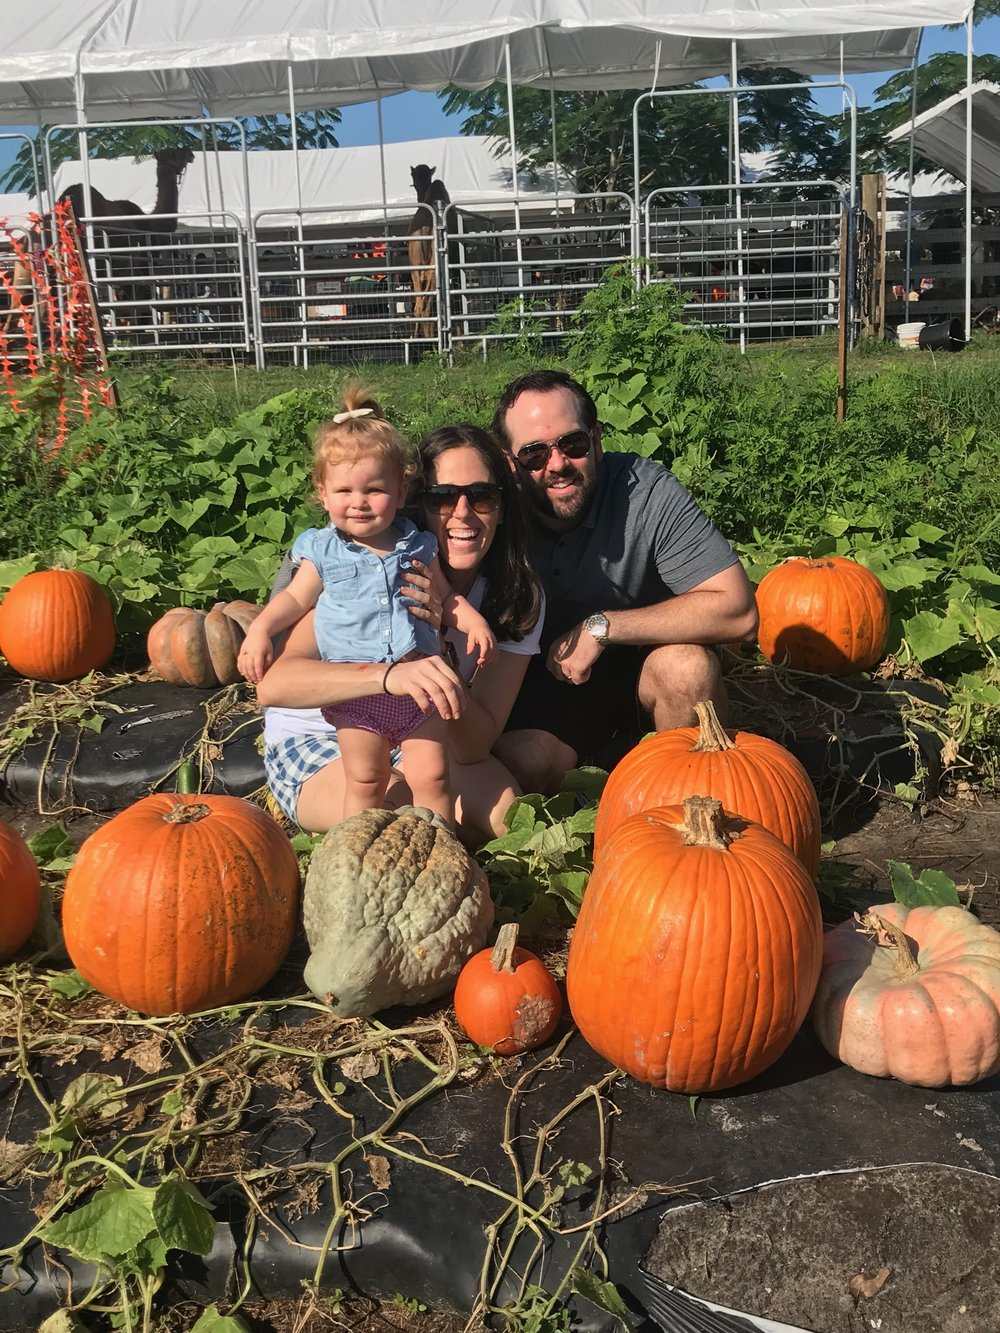 Lauren, Mike and Avery at the pumpkin patch